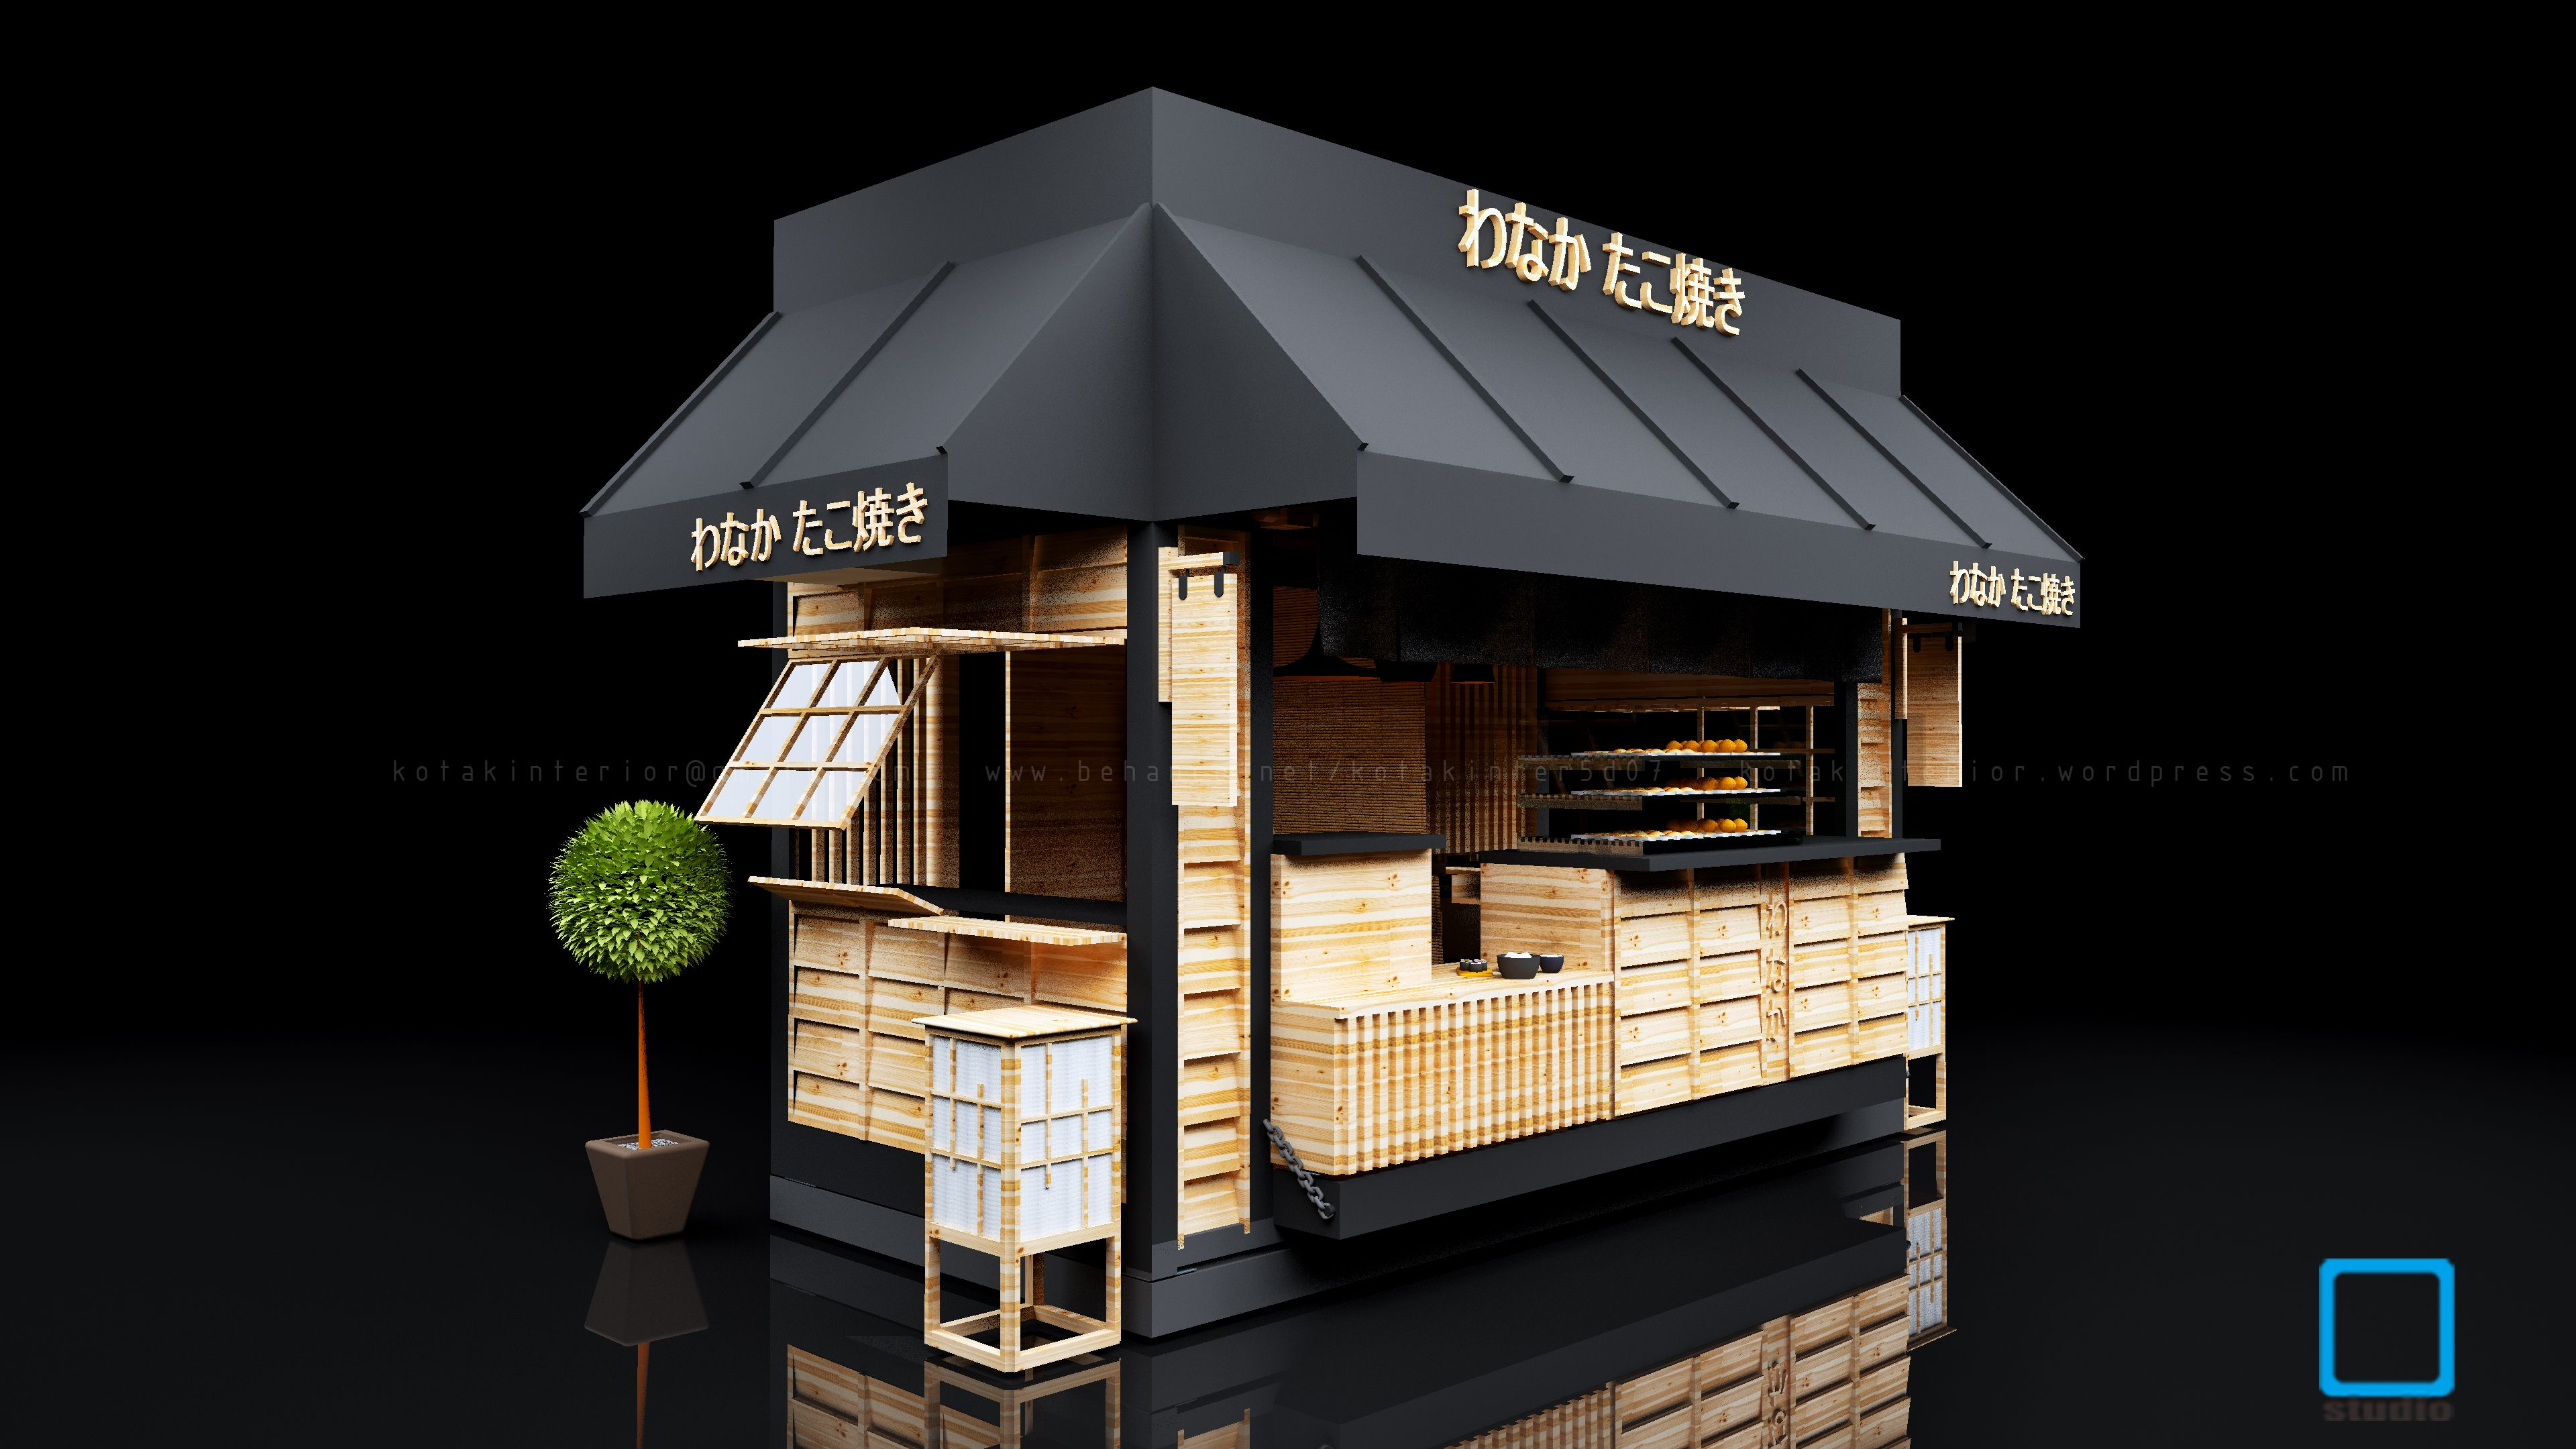 Takoyaki kiosk kiosk design kiosk and food kiosk for Architecture kiosk design